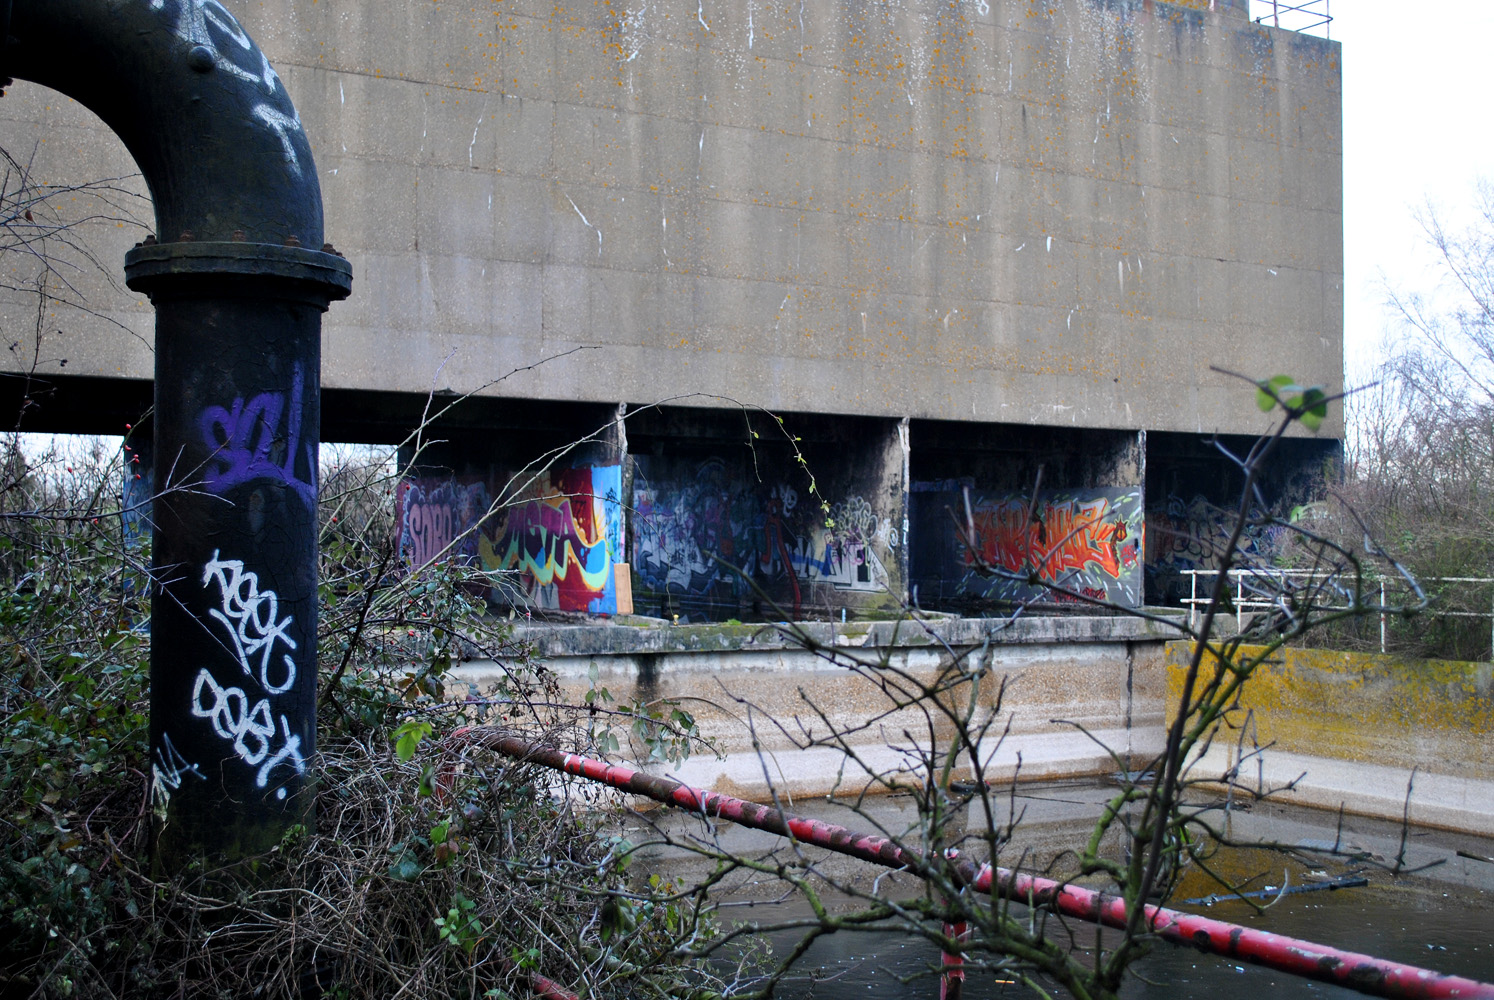 Derelict Fertiliser Factory - Dirty Dirty tanks of chemically waterWhere I cut my urban exploring tooth.Alos ran around here ina bear suit for the the day on one occasion